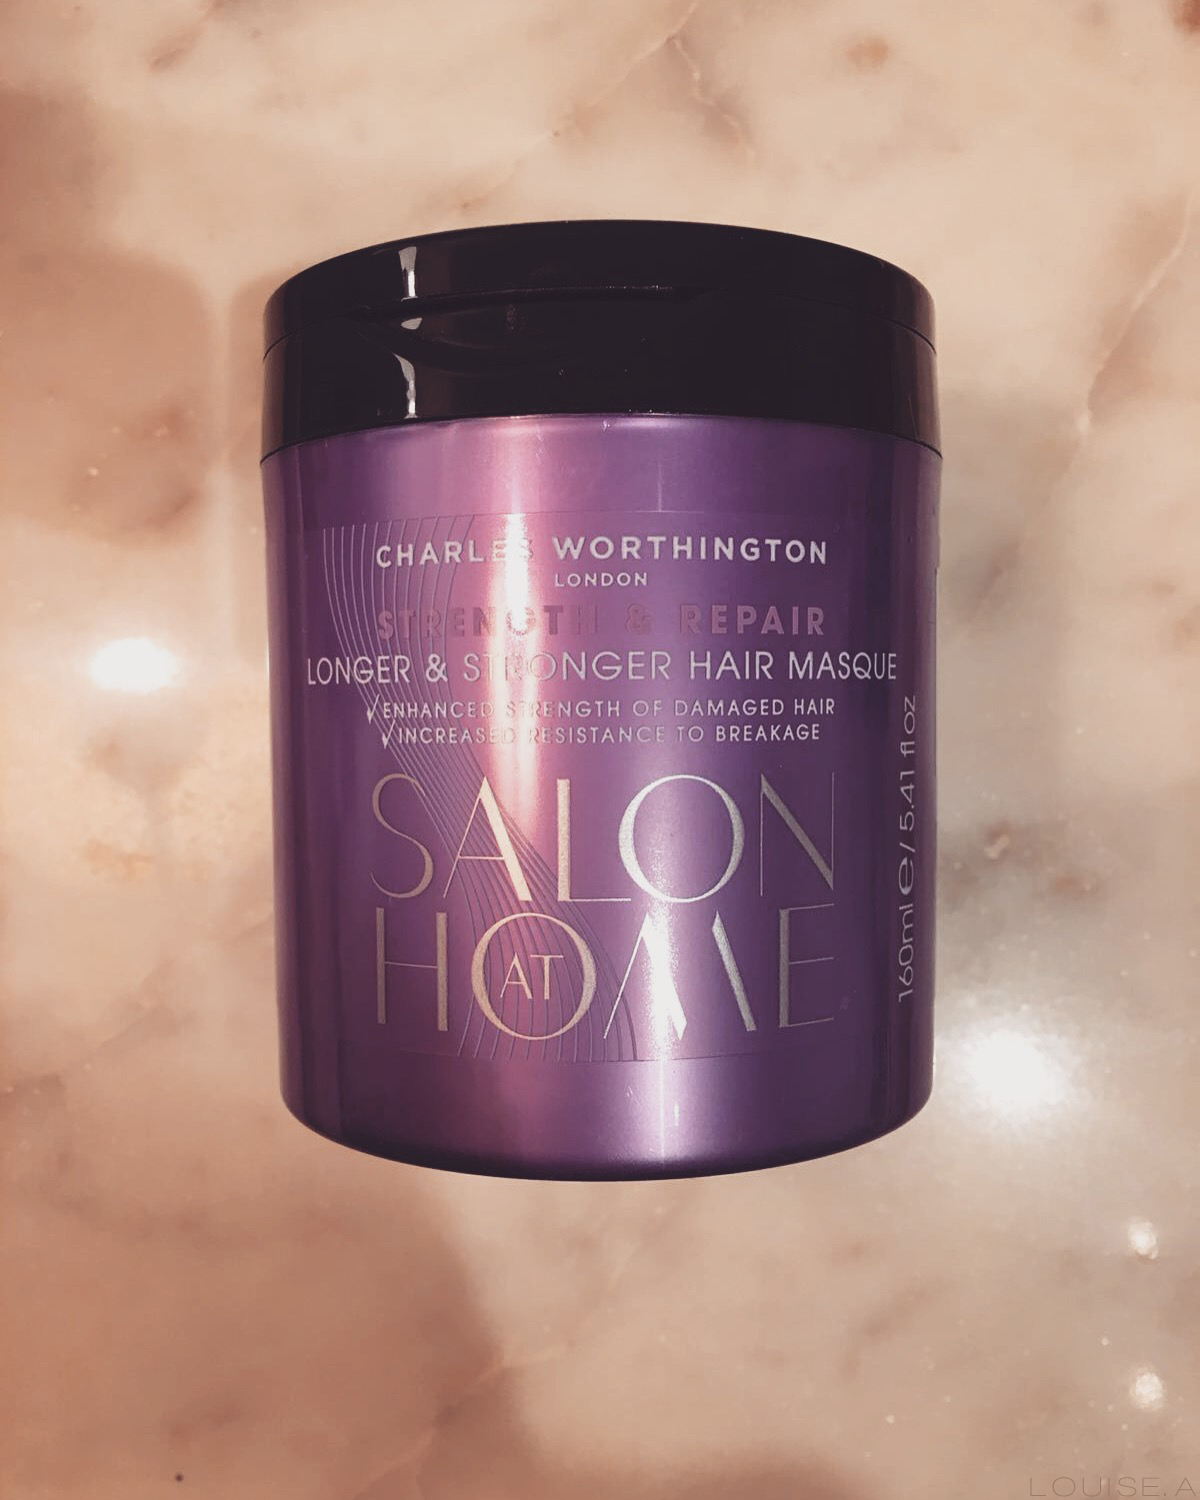 Charles worthington hair treatment mask